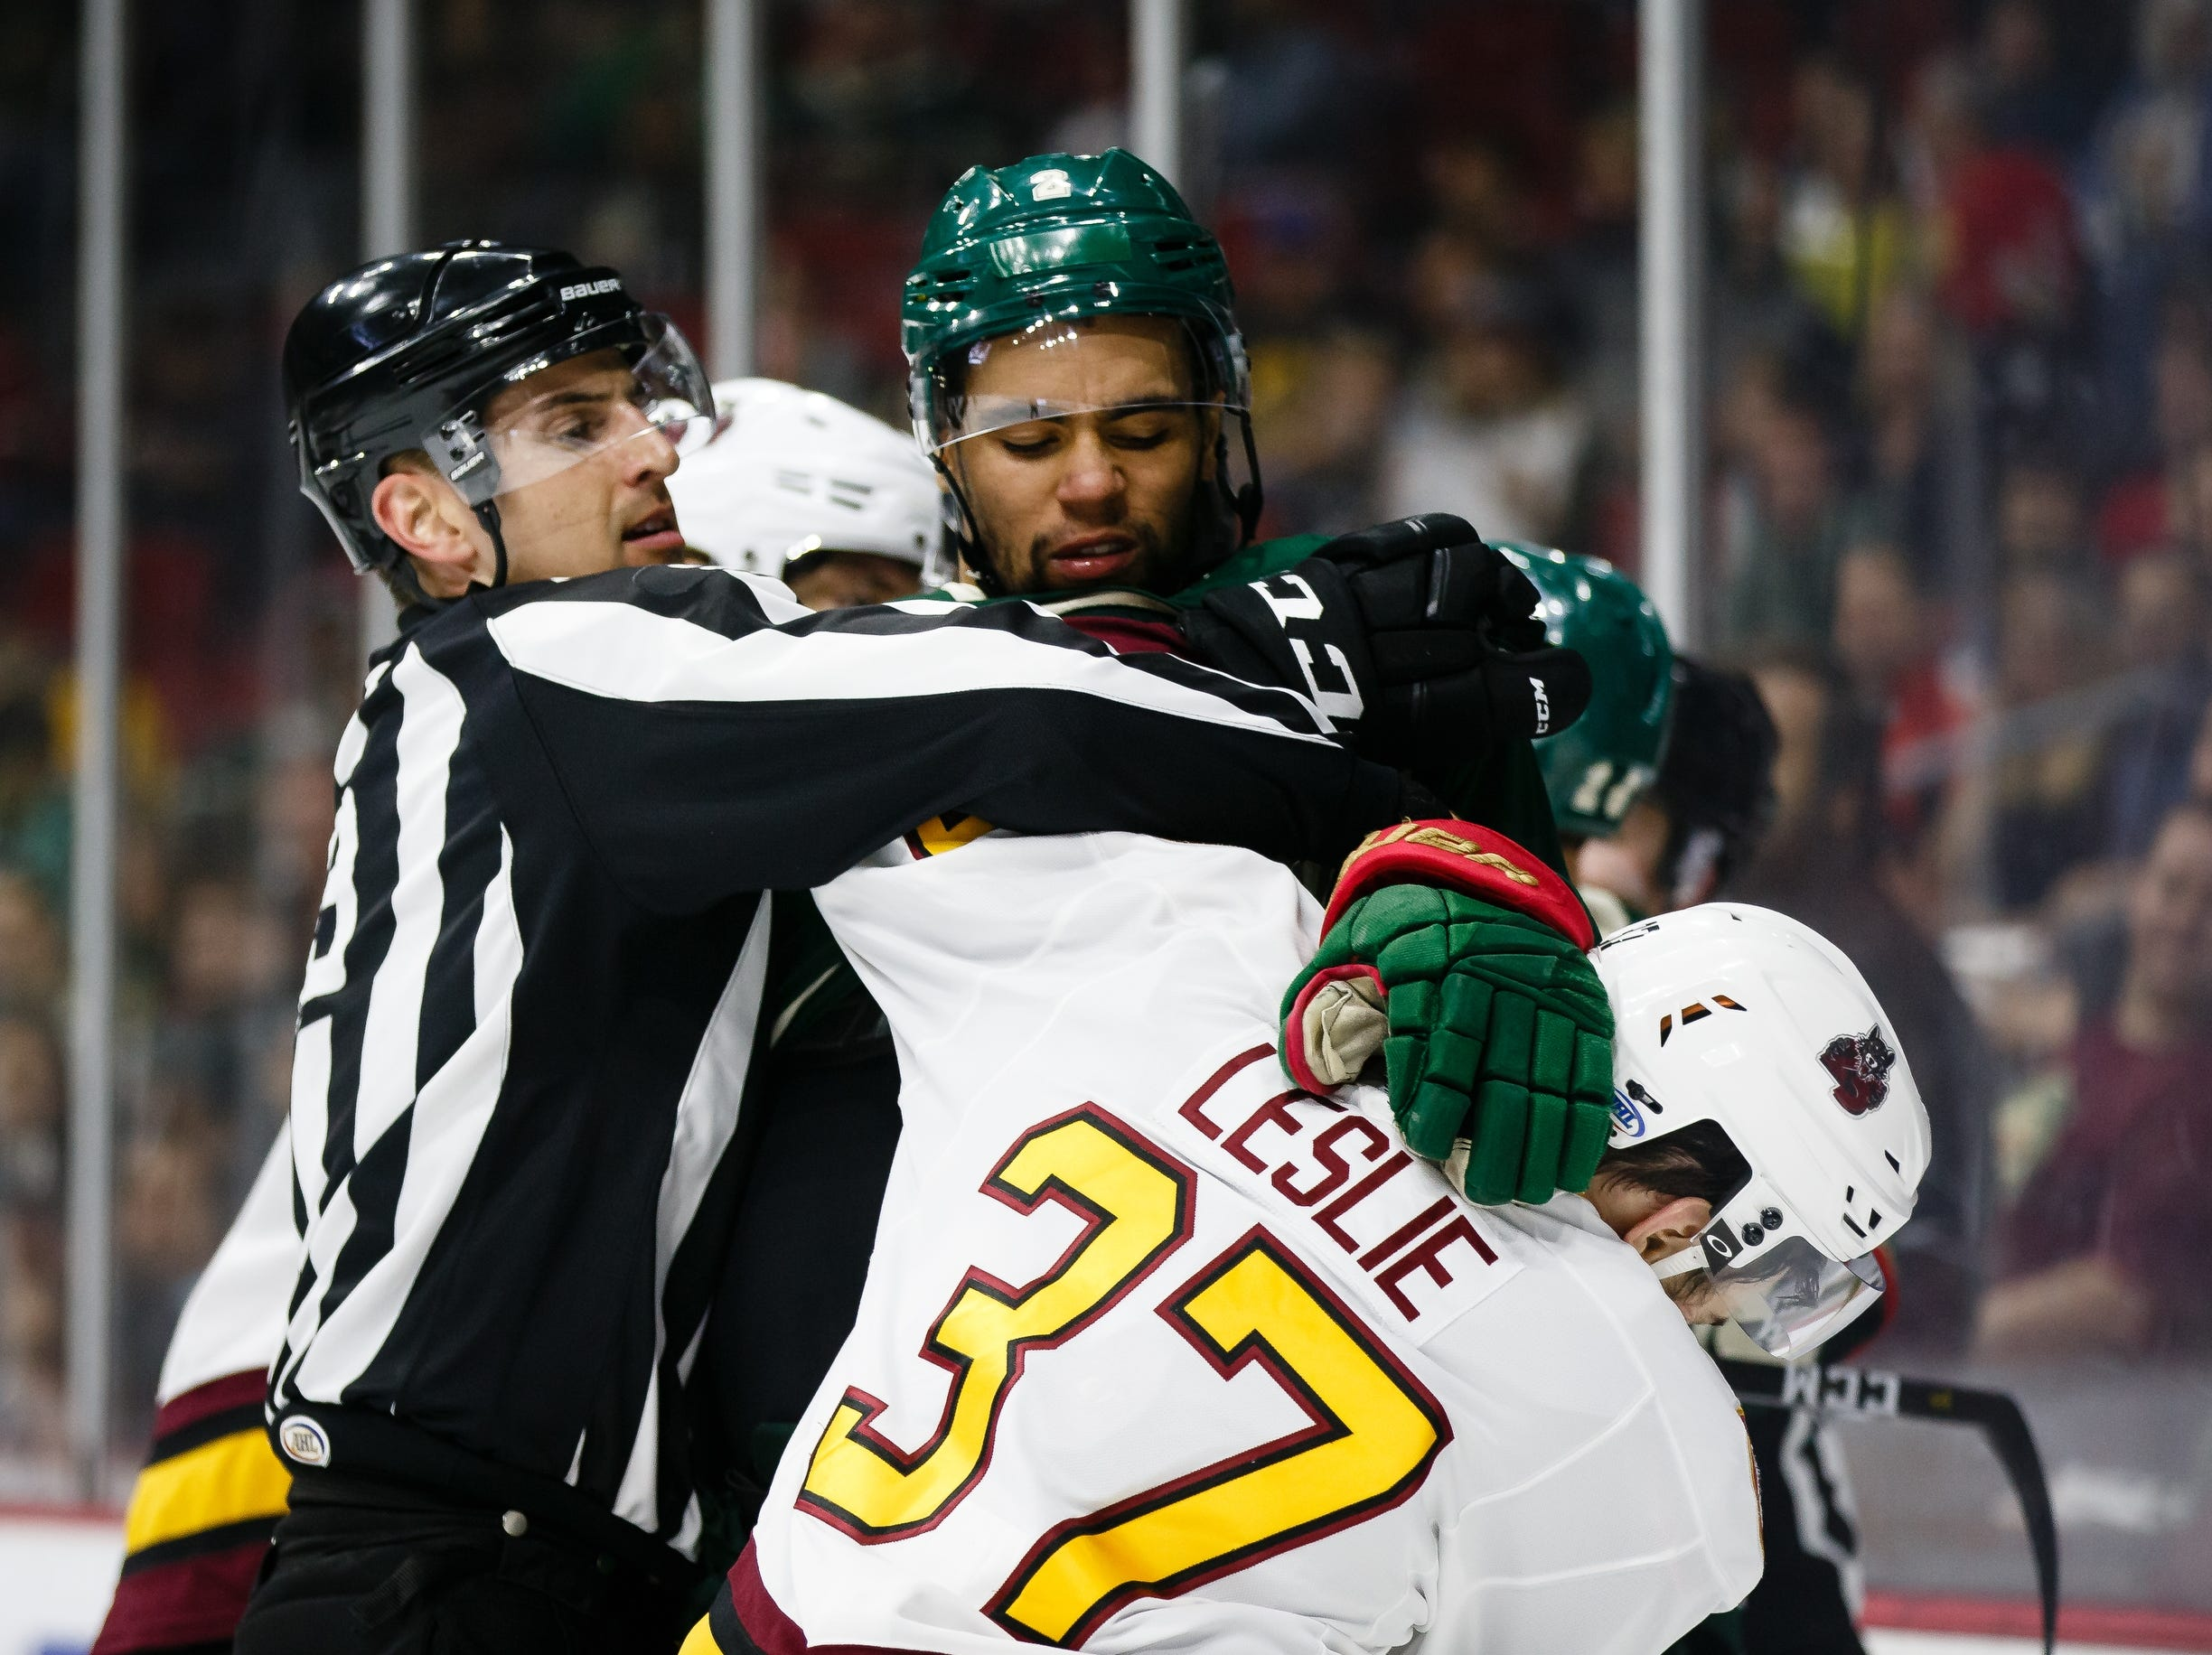 The Iowa Wild's Jordan Greenway fights with the Chicago Wolves Zac Leslie during their Calder Cup playoff hockey game on Friday, May 10, 2019, in Des Moines.